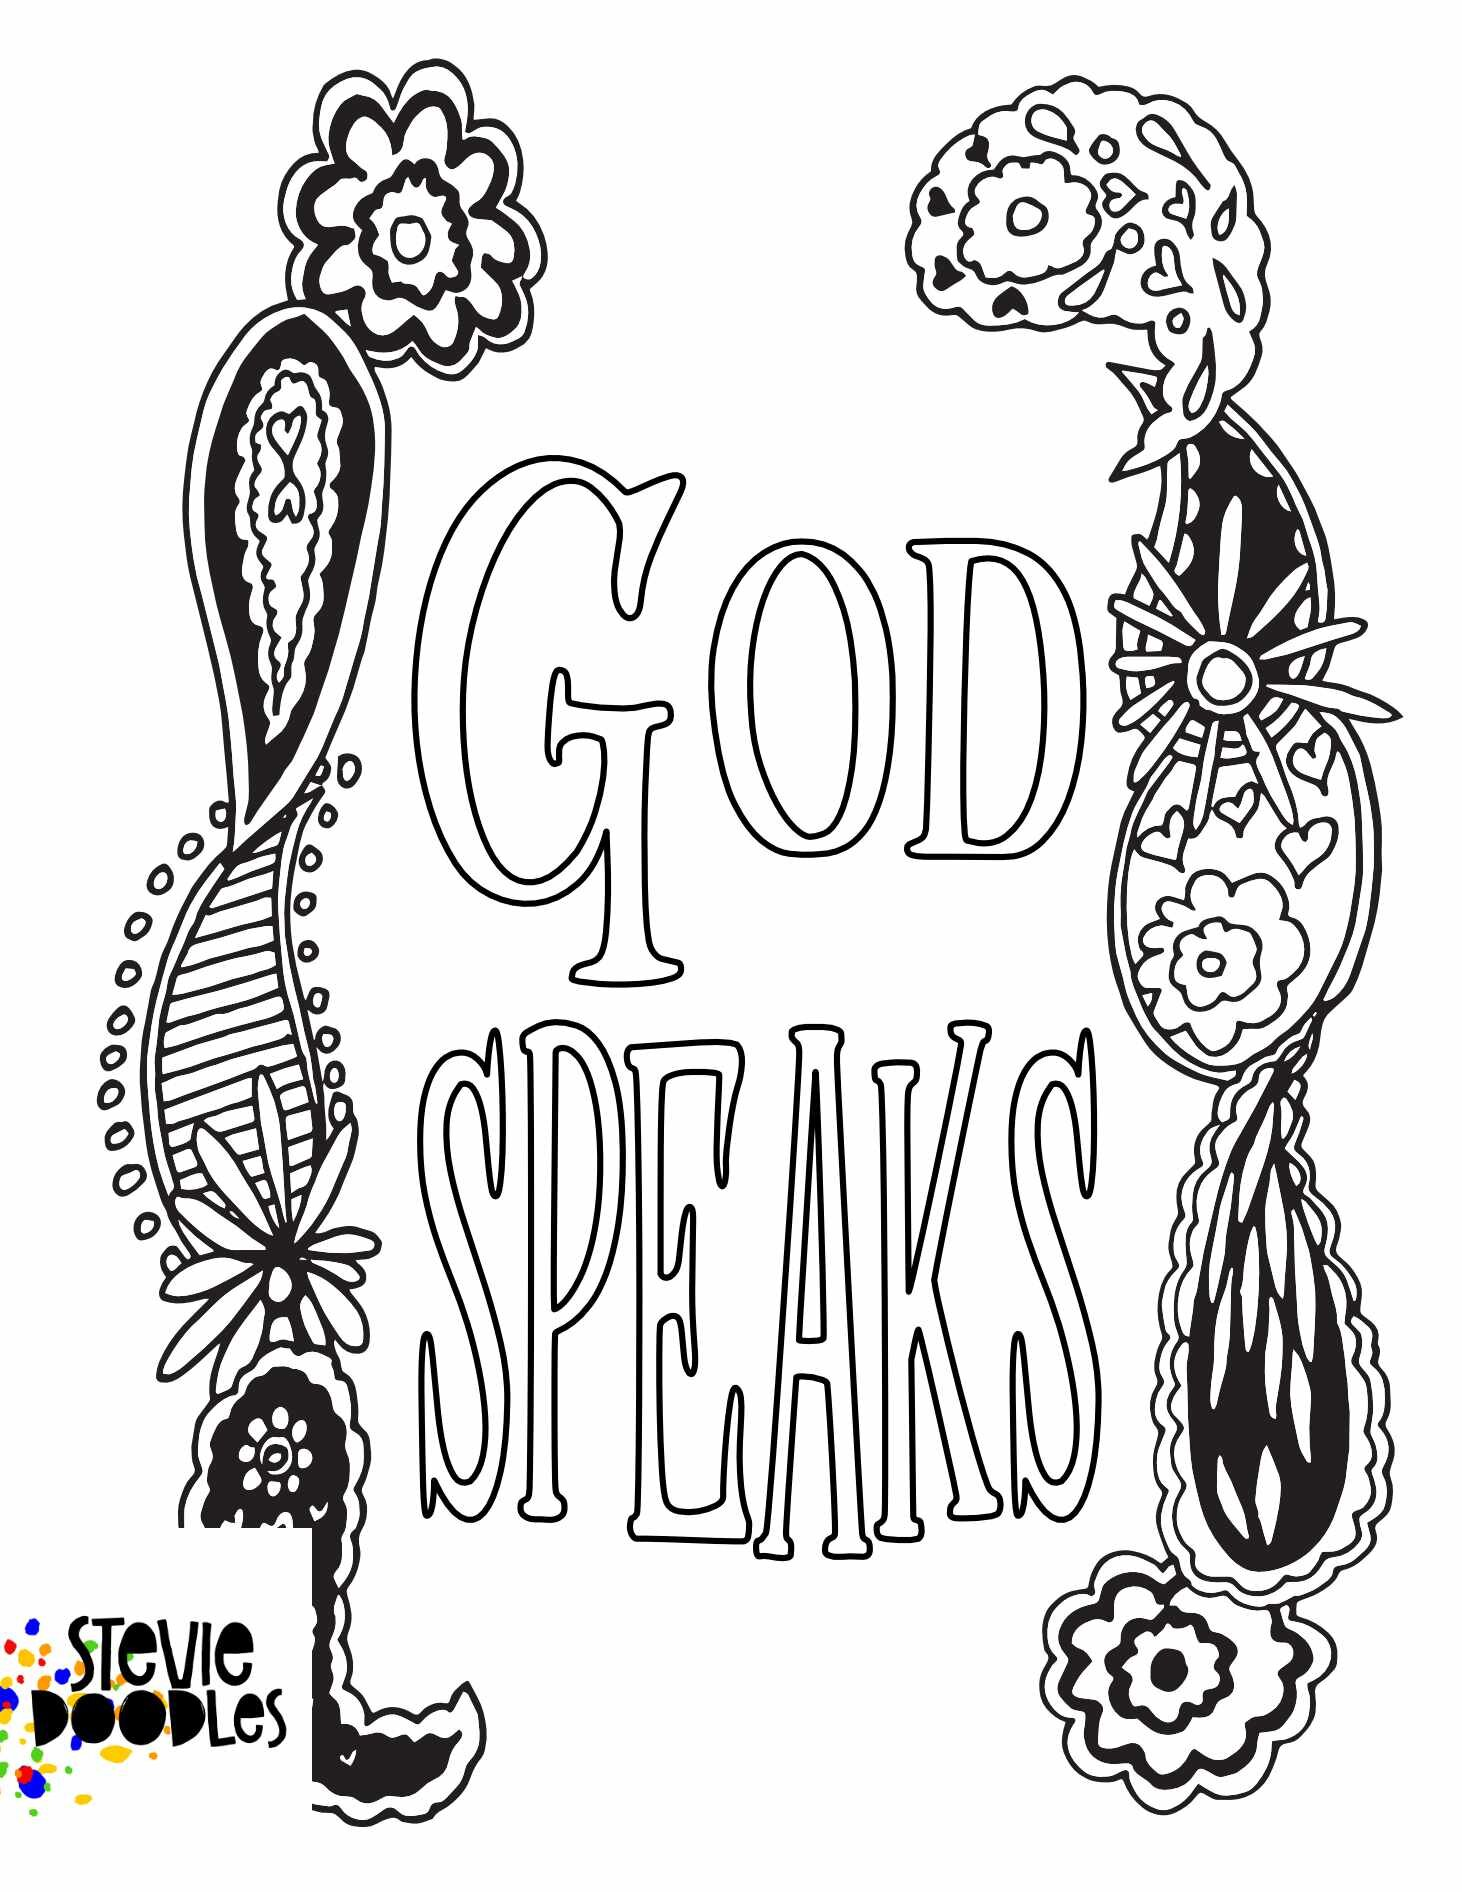 experiencing god — 27+ Free Printable Coloring Pages — Stevie